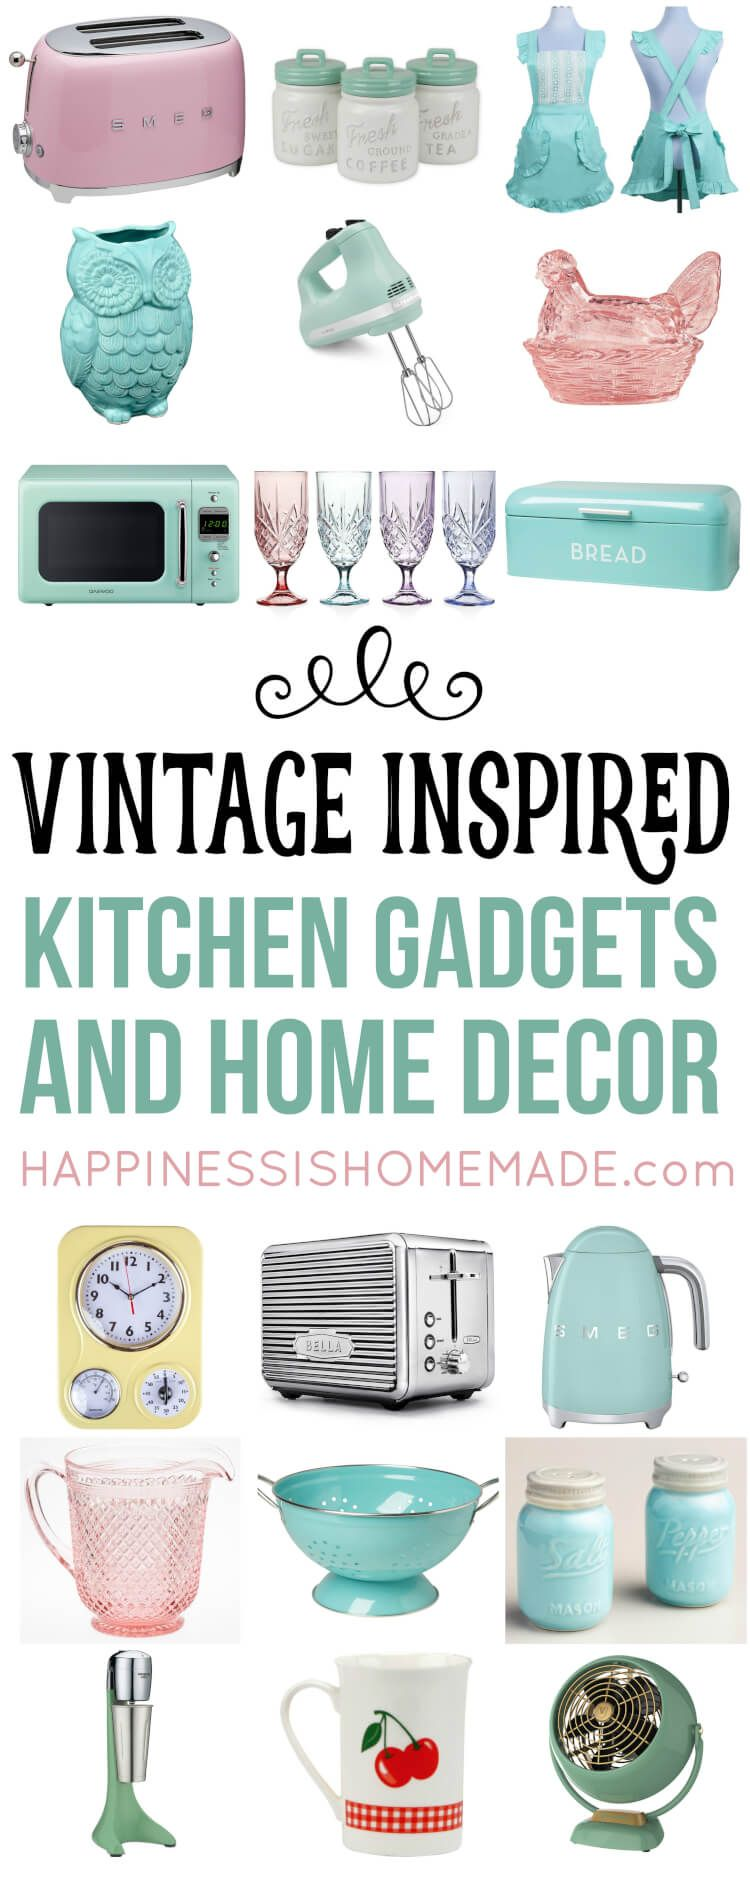 Nostalgic Vintage-Inspired Kitchen Decor and Gadgets that are perfect for your kitschy retro revival…